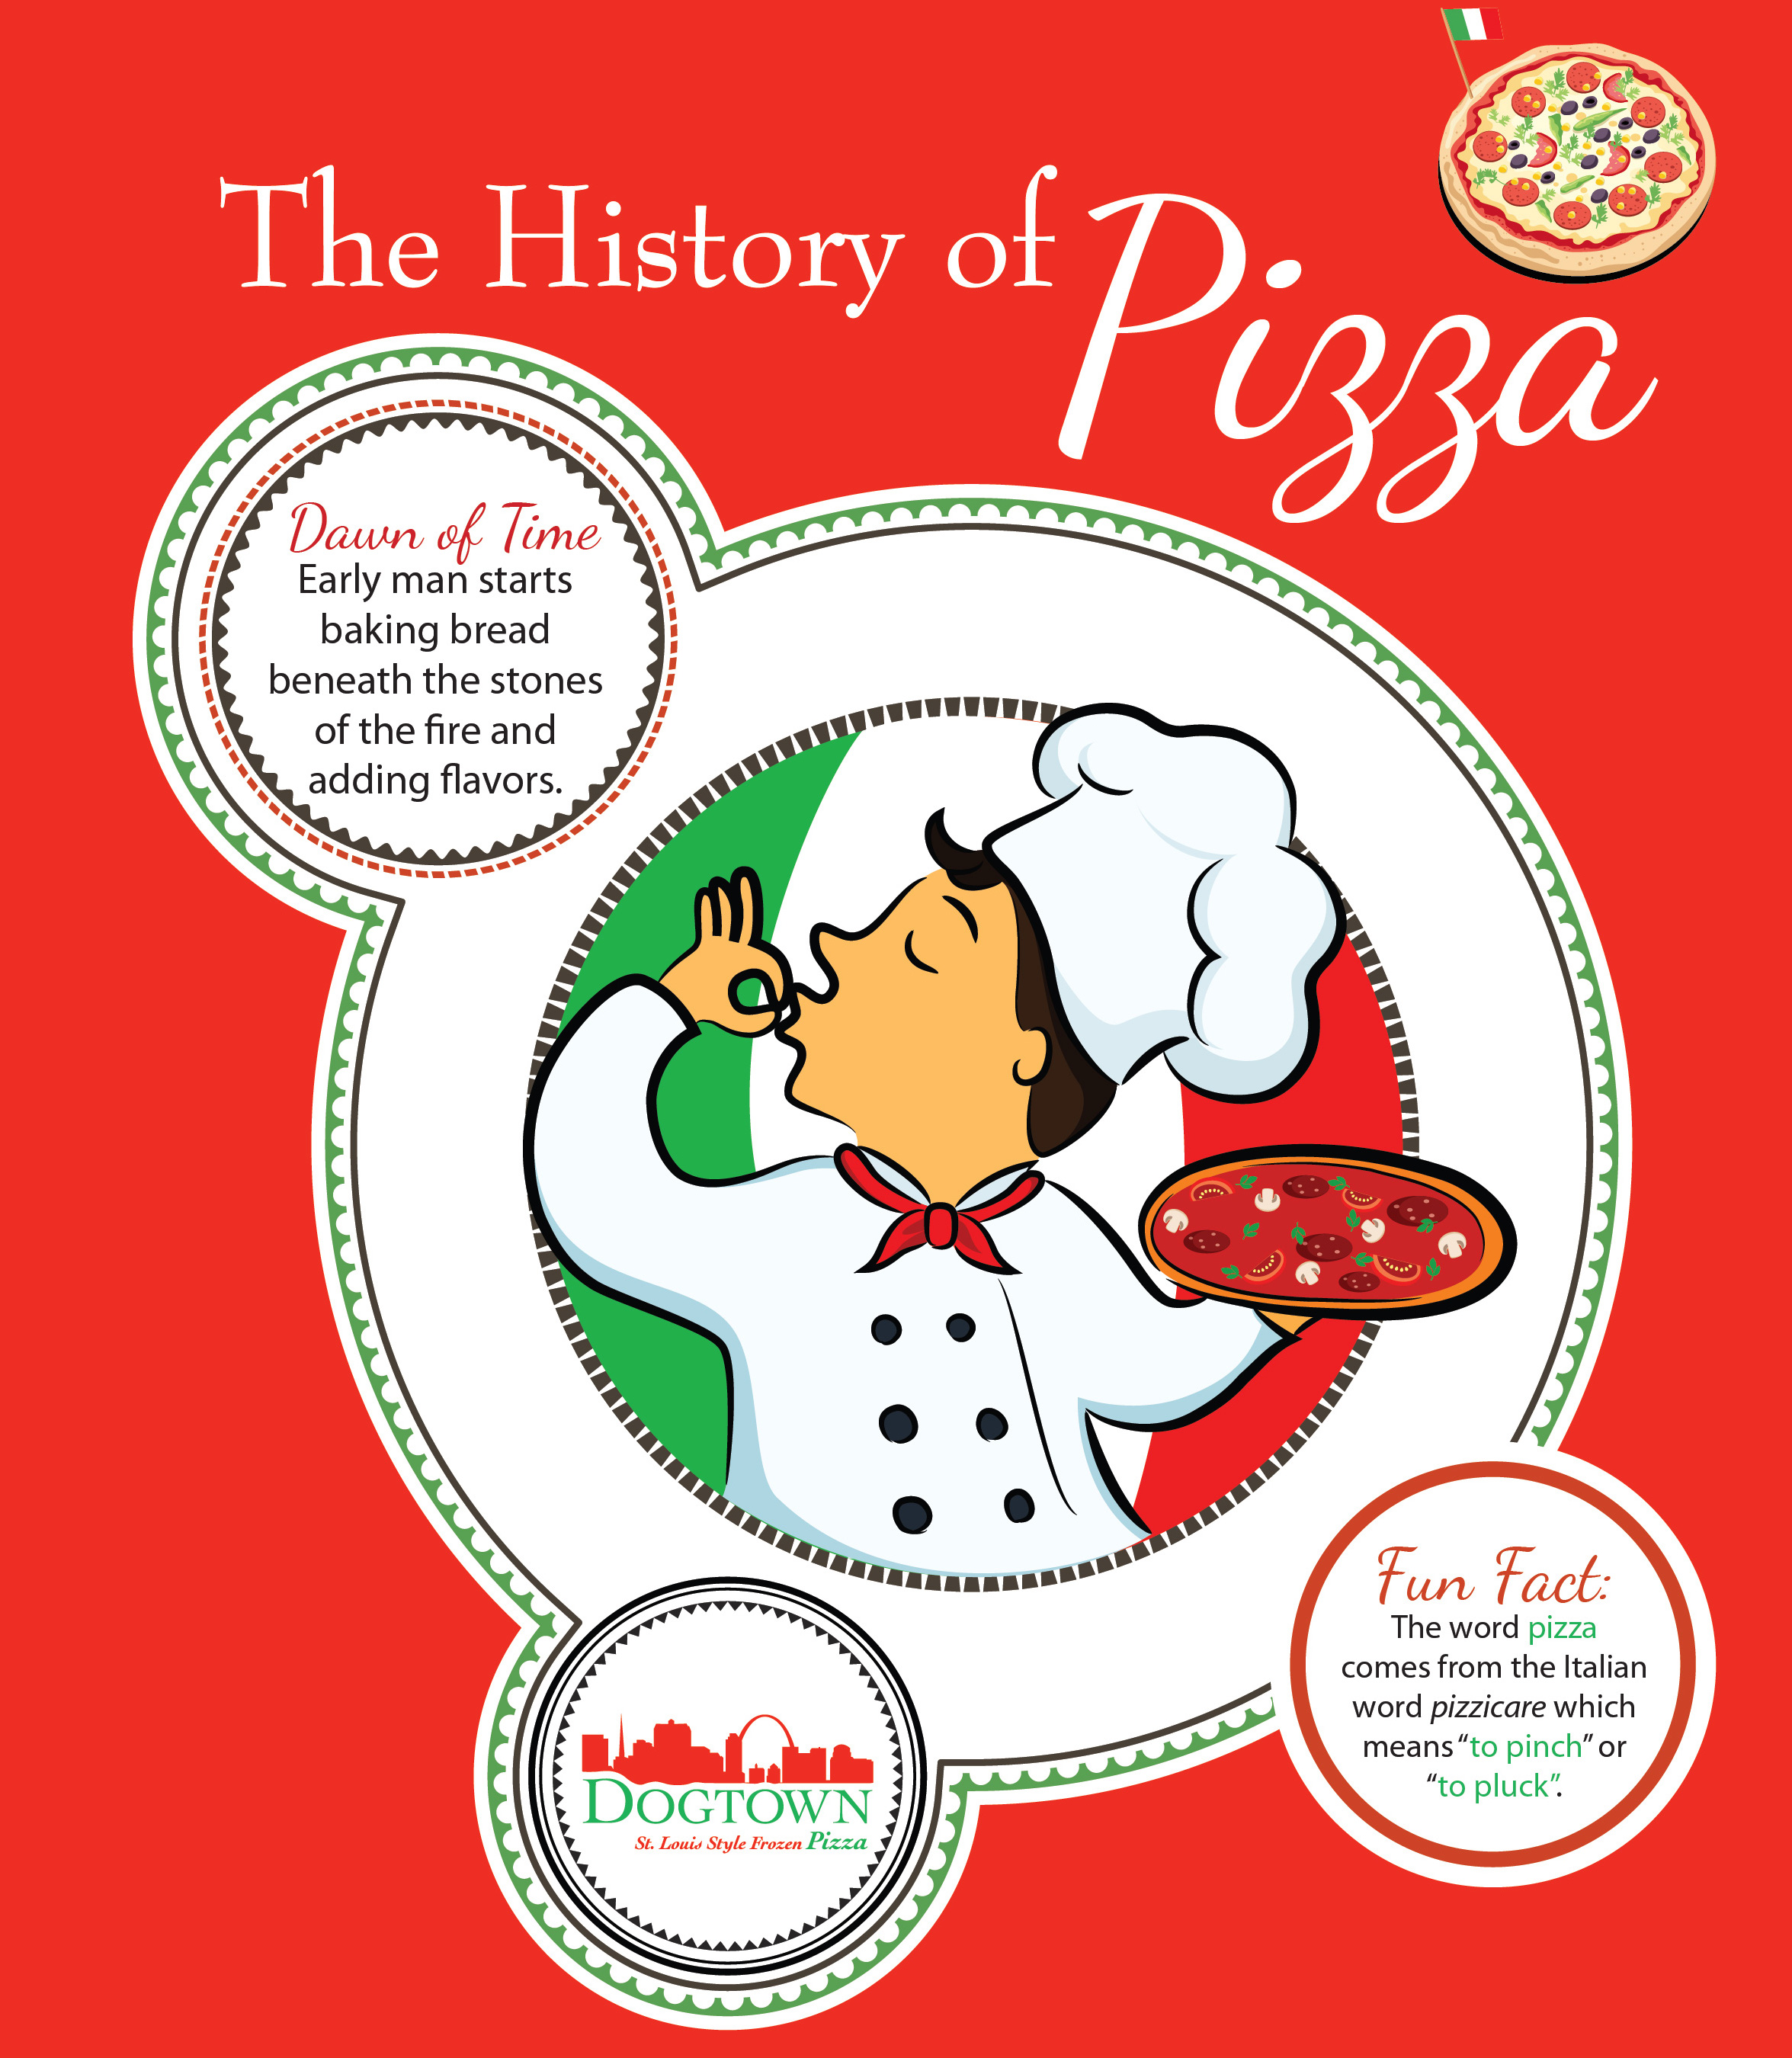 History Of Pizza Dogtown St Louis